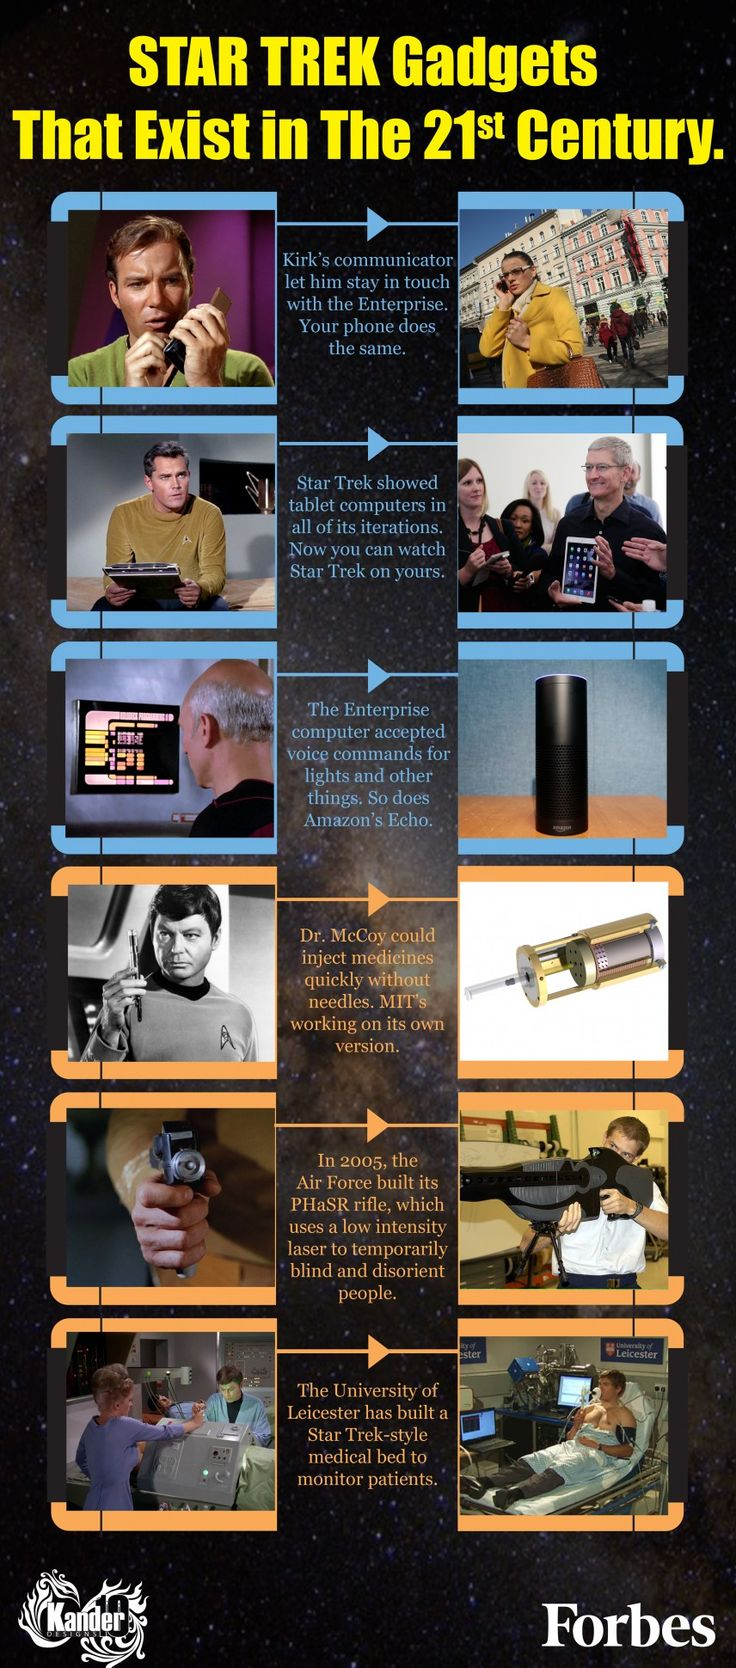 Here's a few gadgets from Star Trek that you can have here in the 21st century.